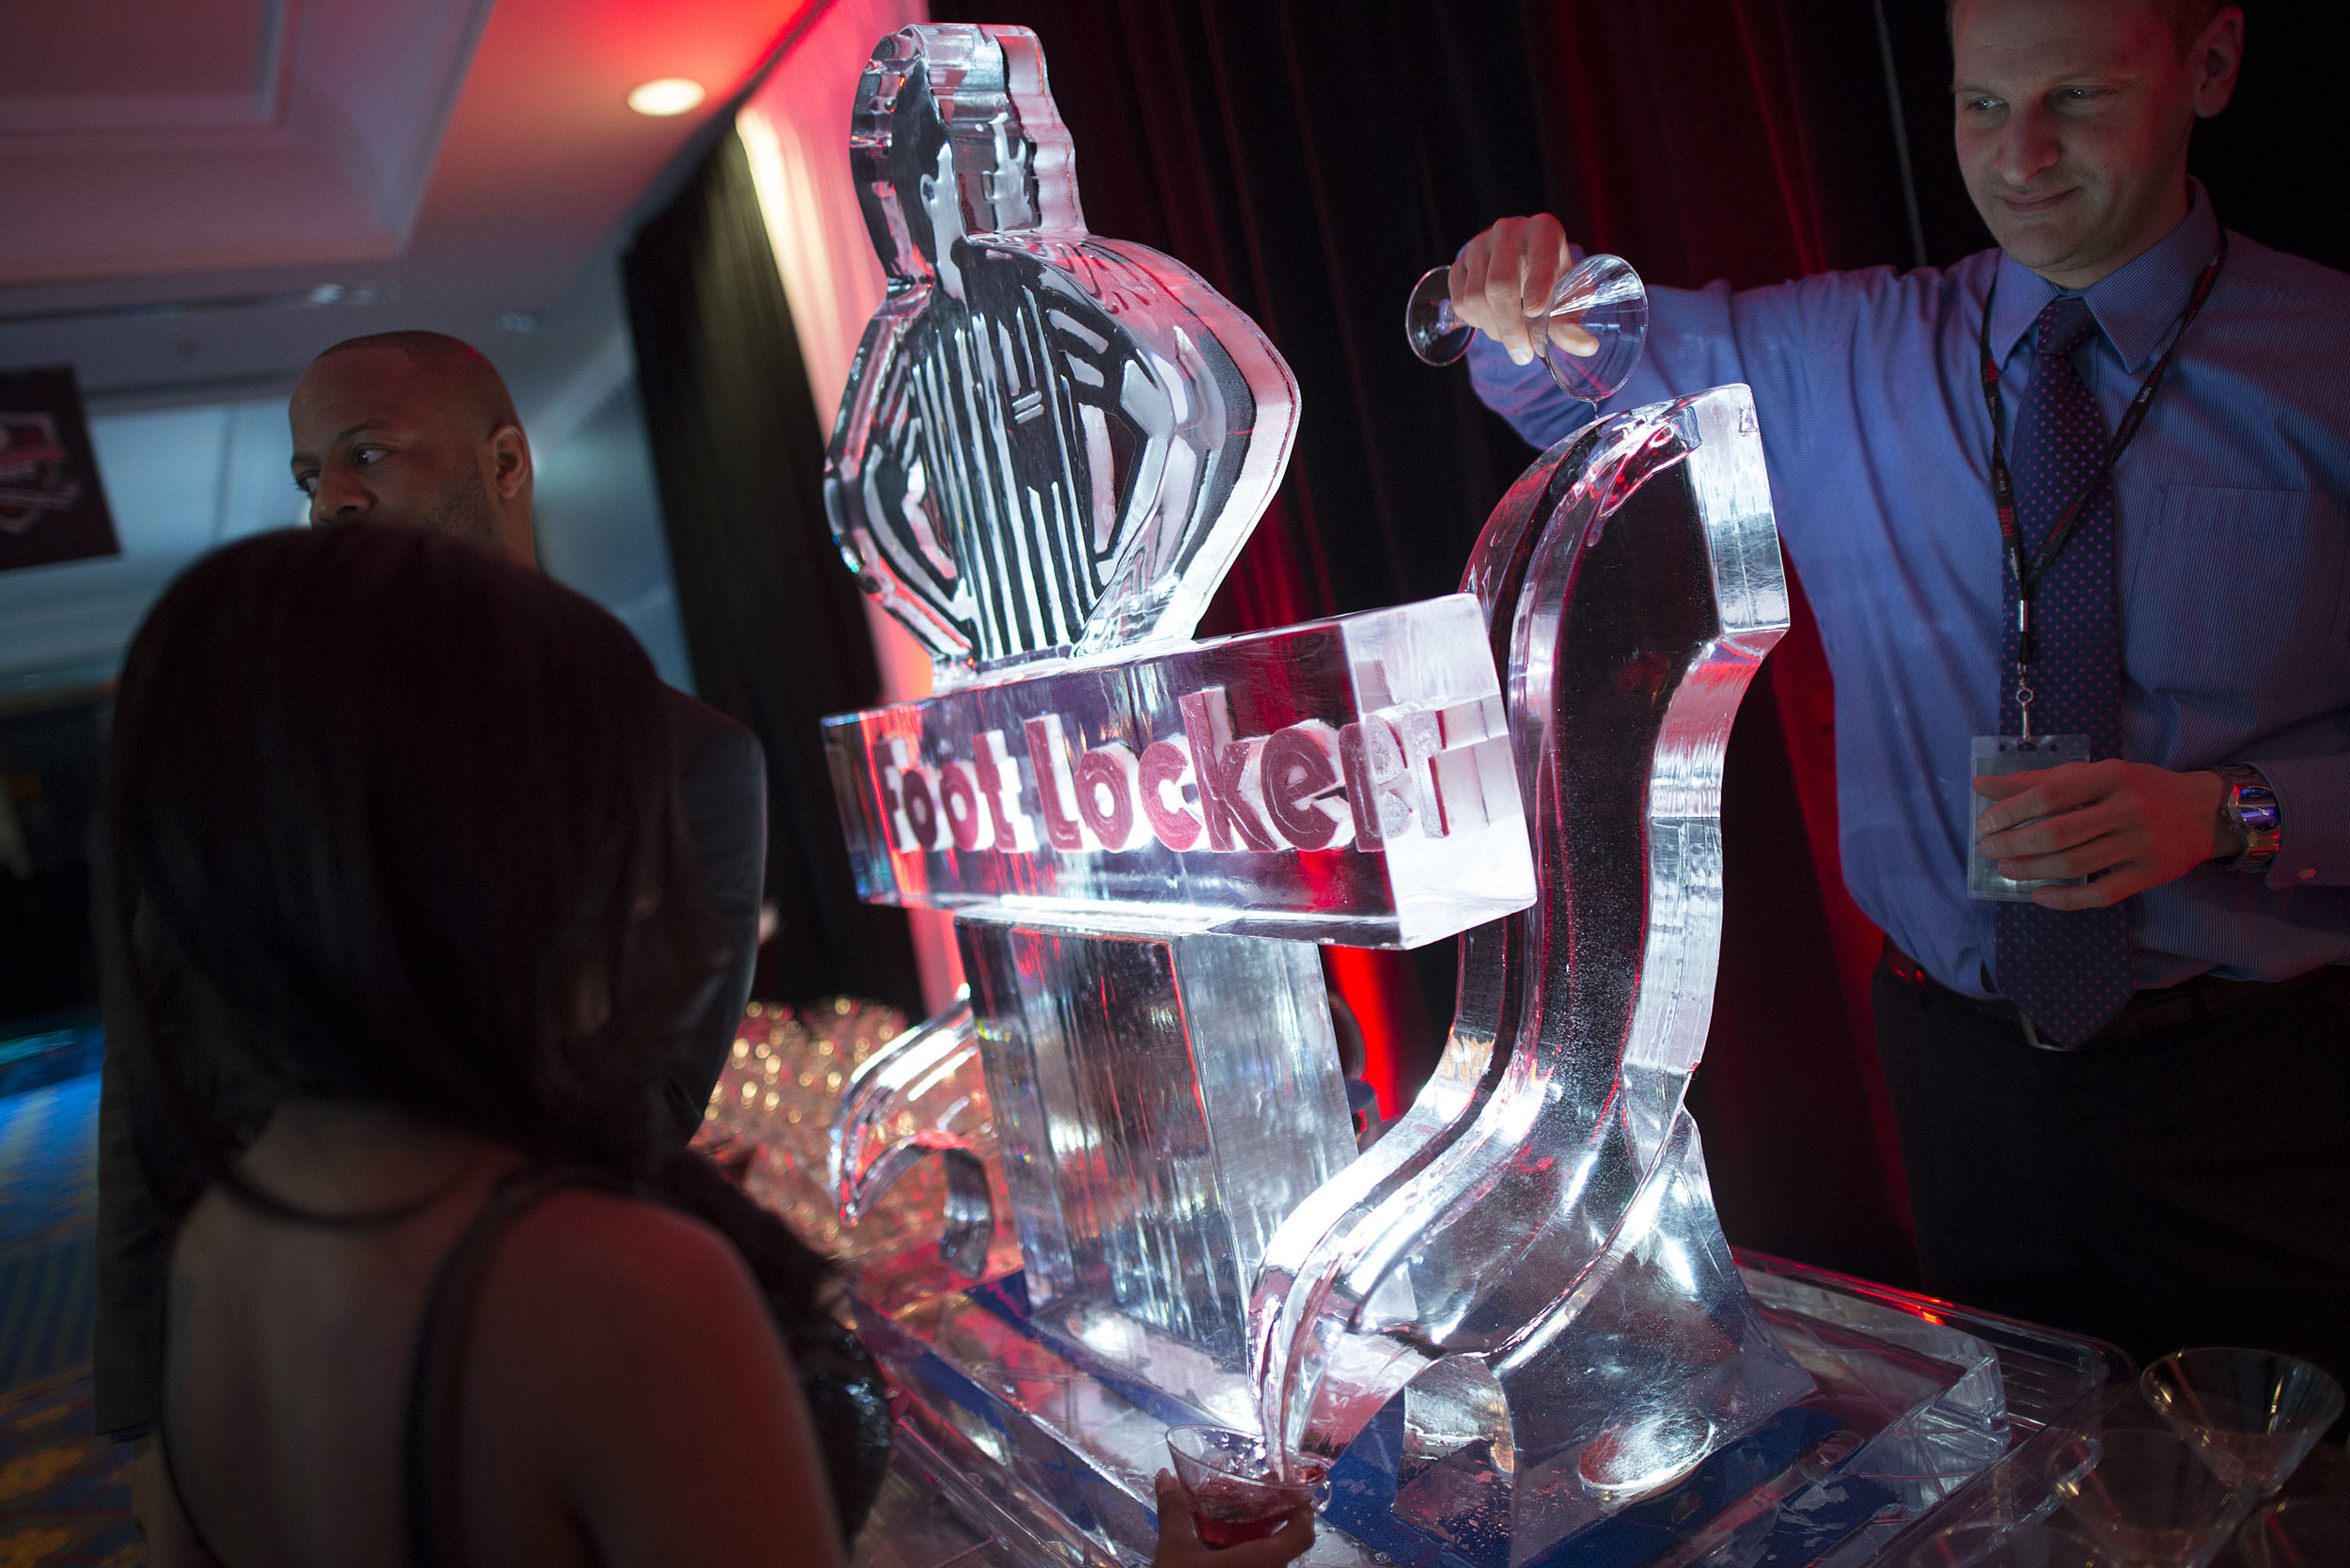 Foot Locker - Conferences | Workshops | Closing parties | In-store vendor activations | Galas and awards dinnersLearn more